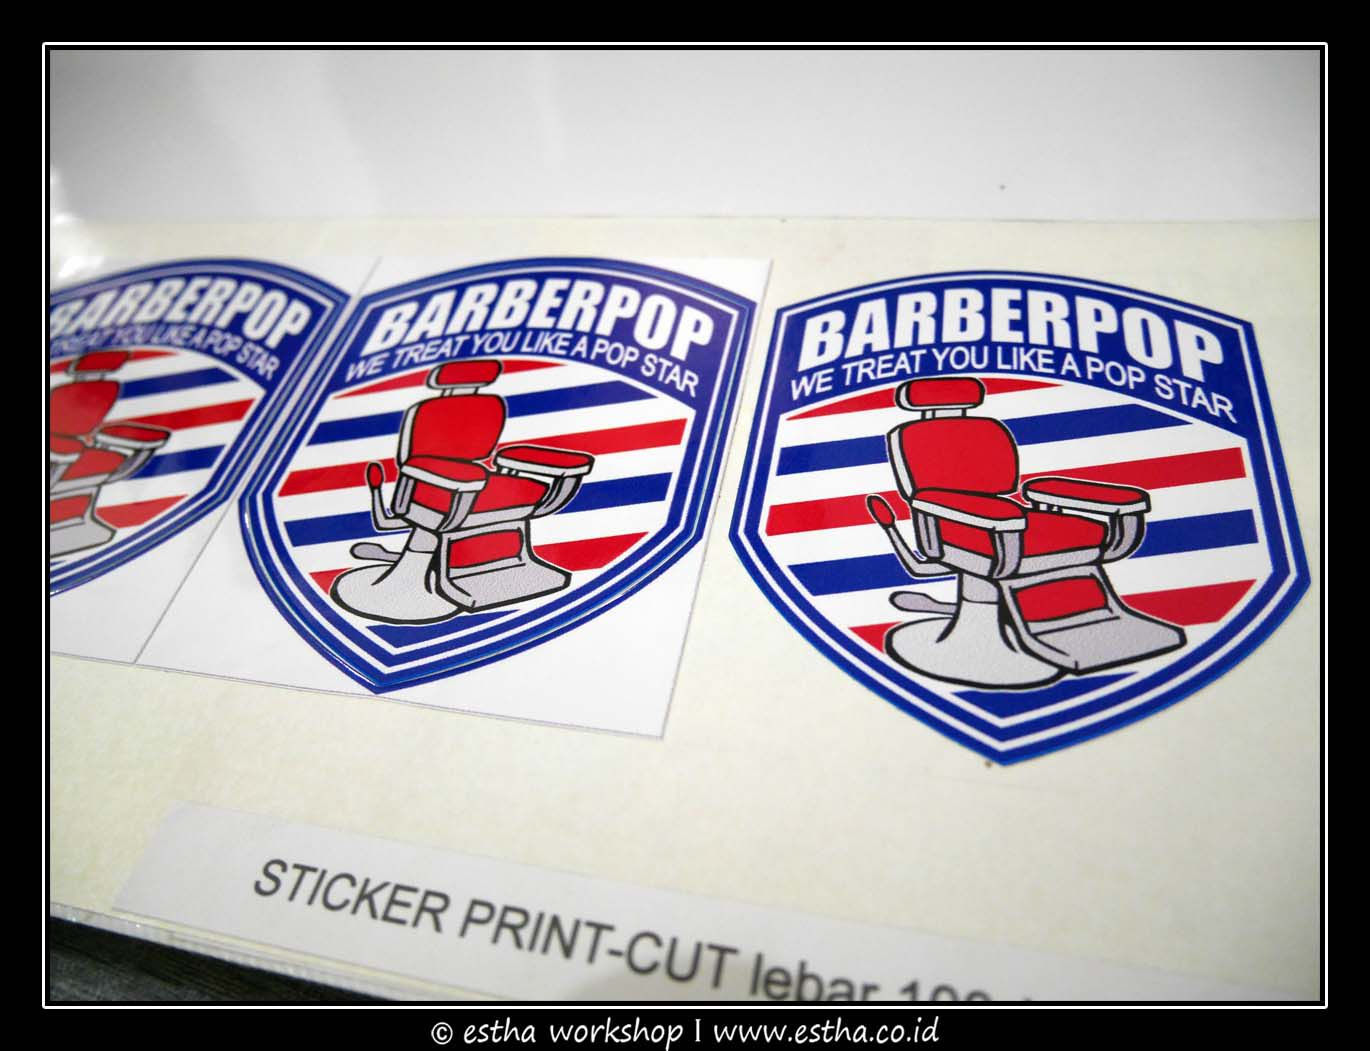 Sticker - Print & Cut